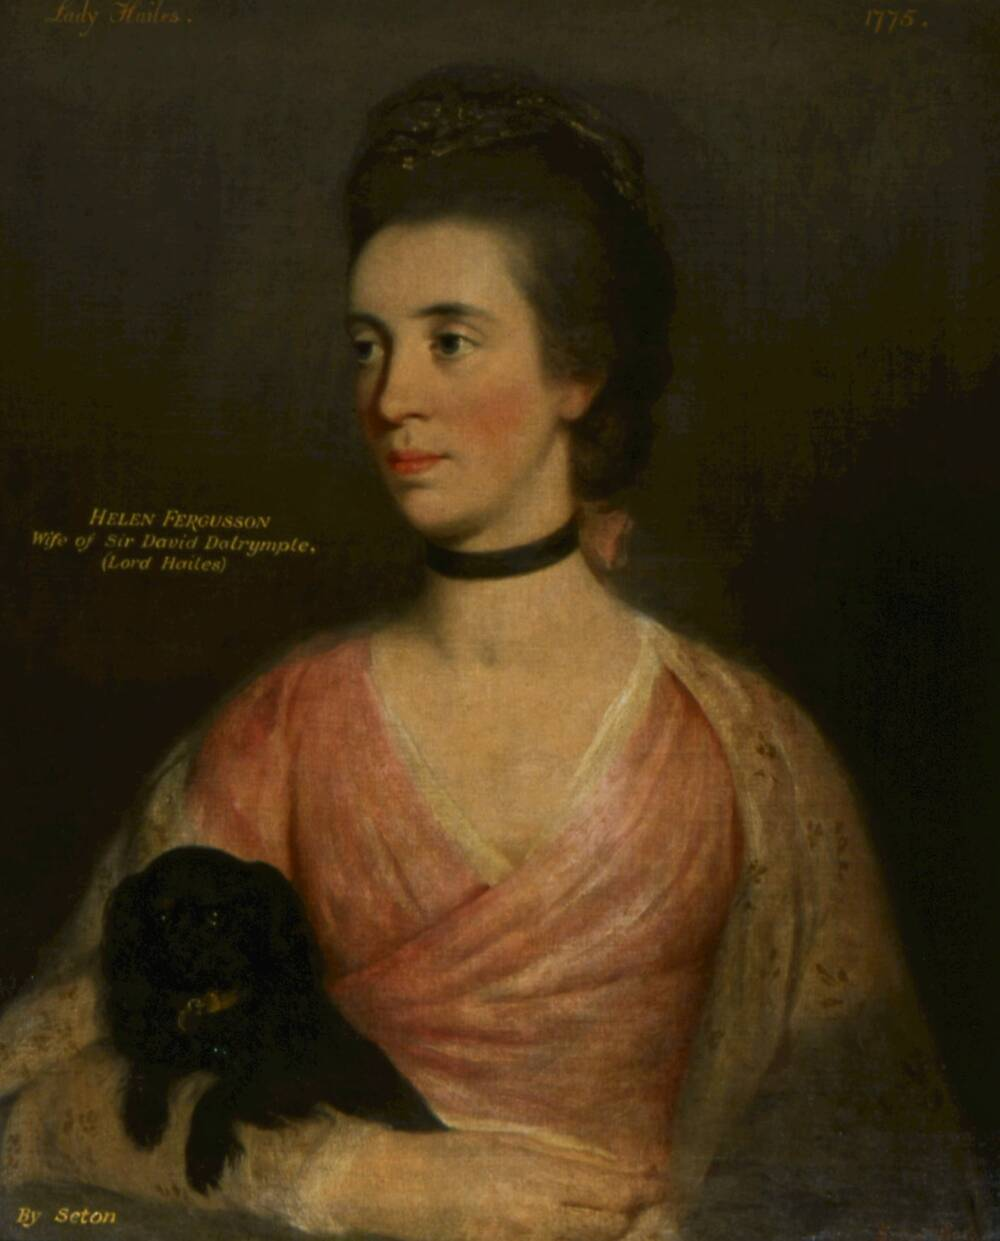 Helen Fergusson (1775) by John Thomas Seton. Lady Hailes was Miss Christian's stepmother, Helen Fergusson